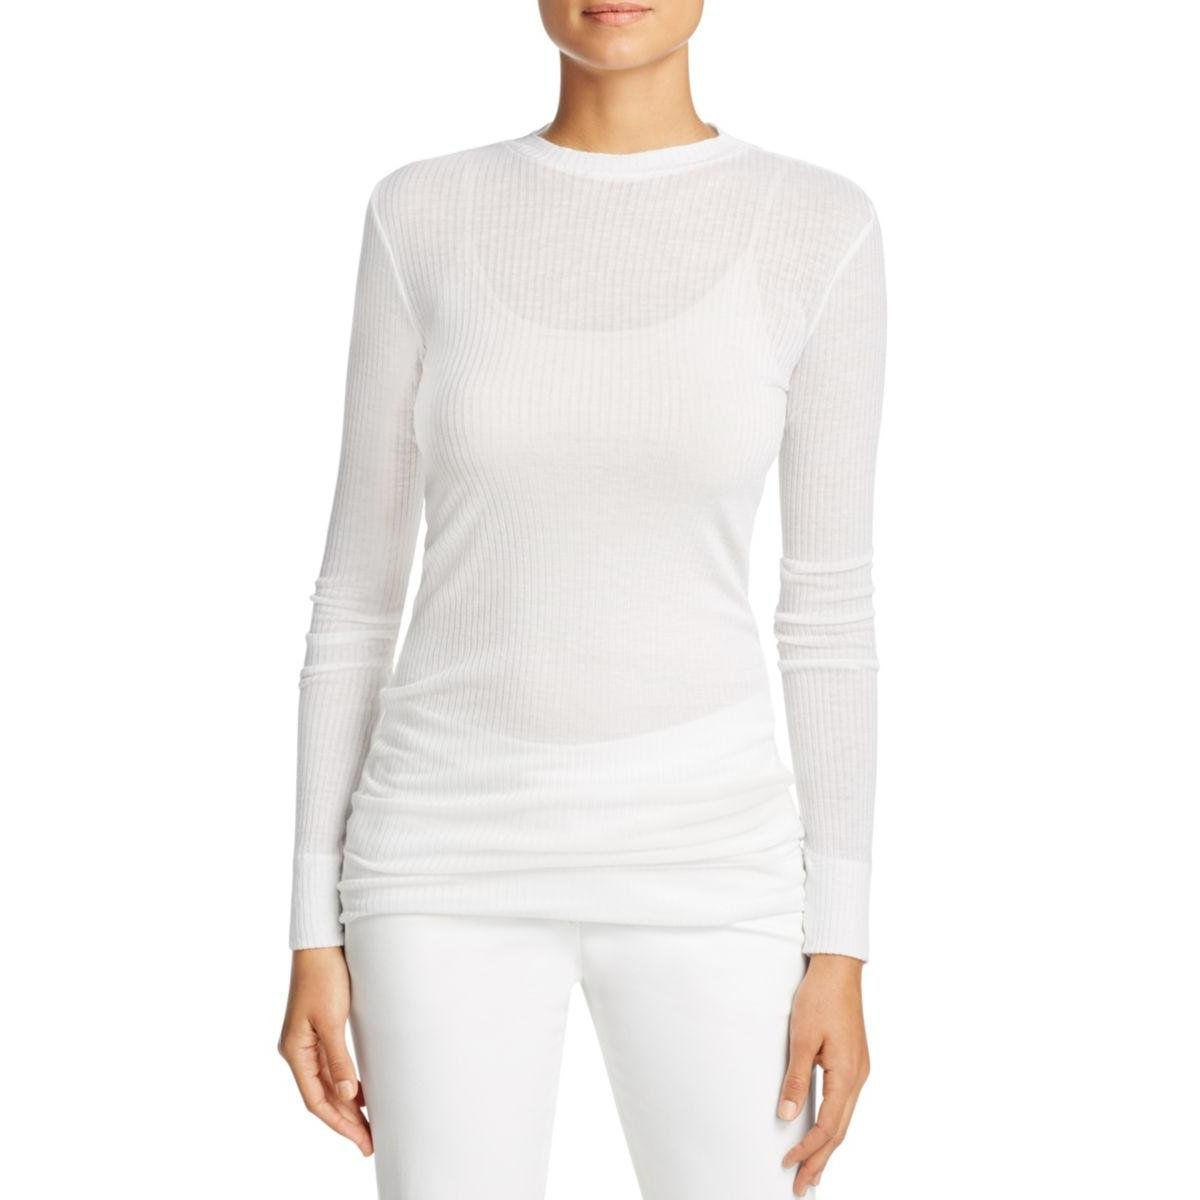 DKNY Womens Petites Ribbed Long Sleeves Pullover Top